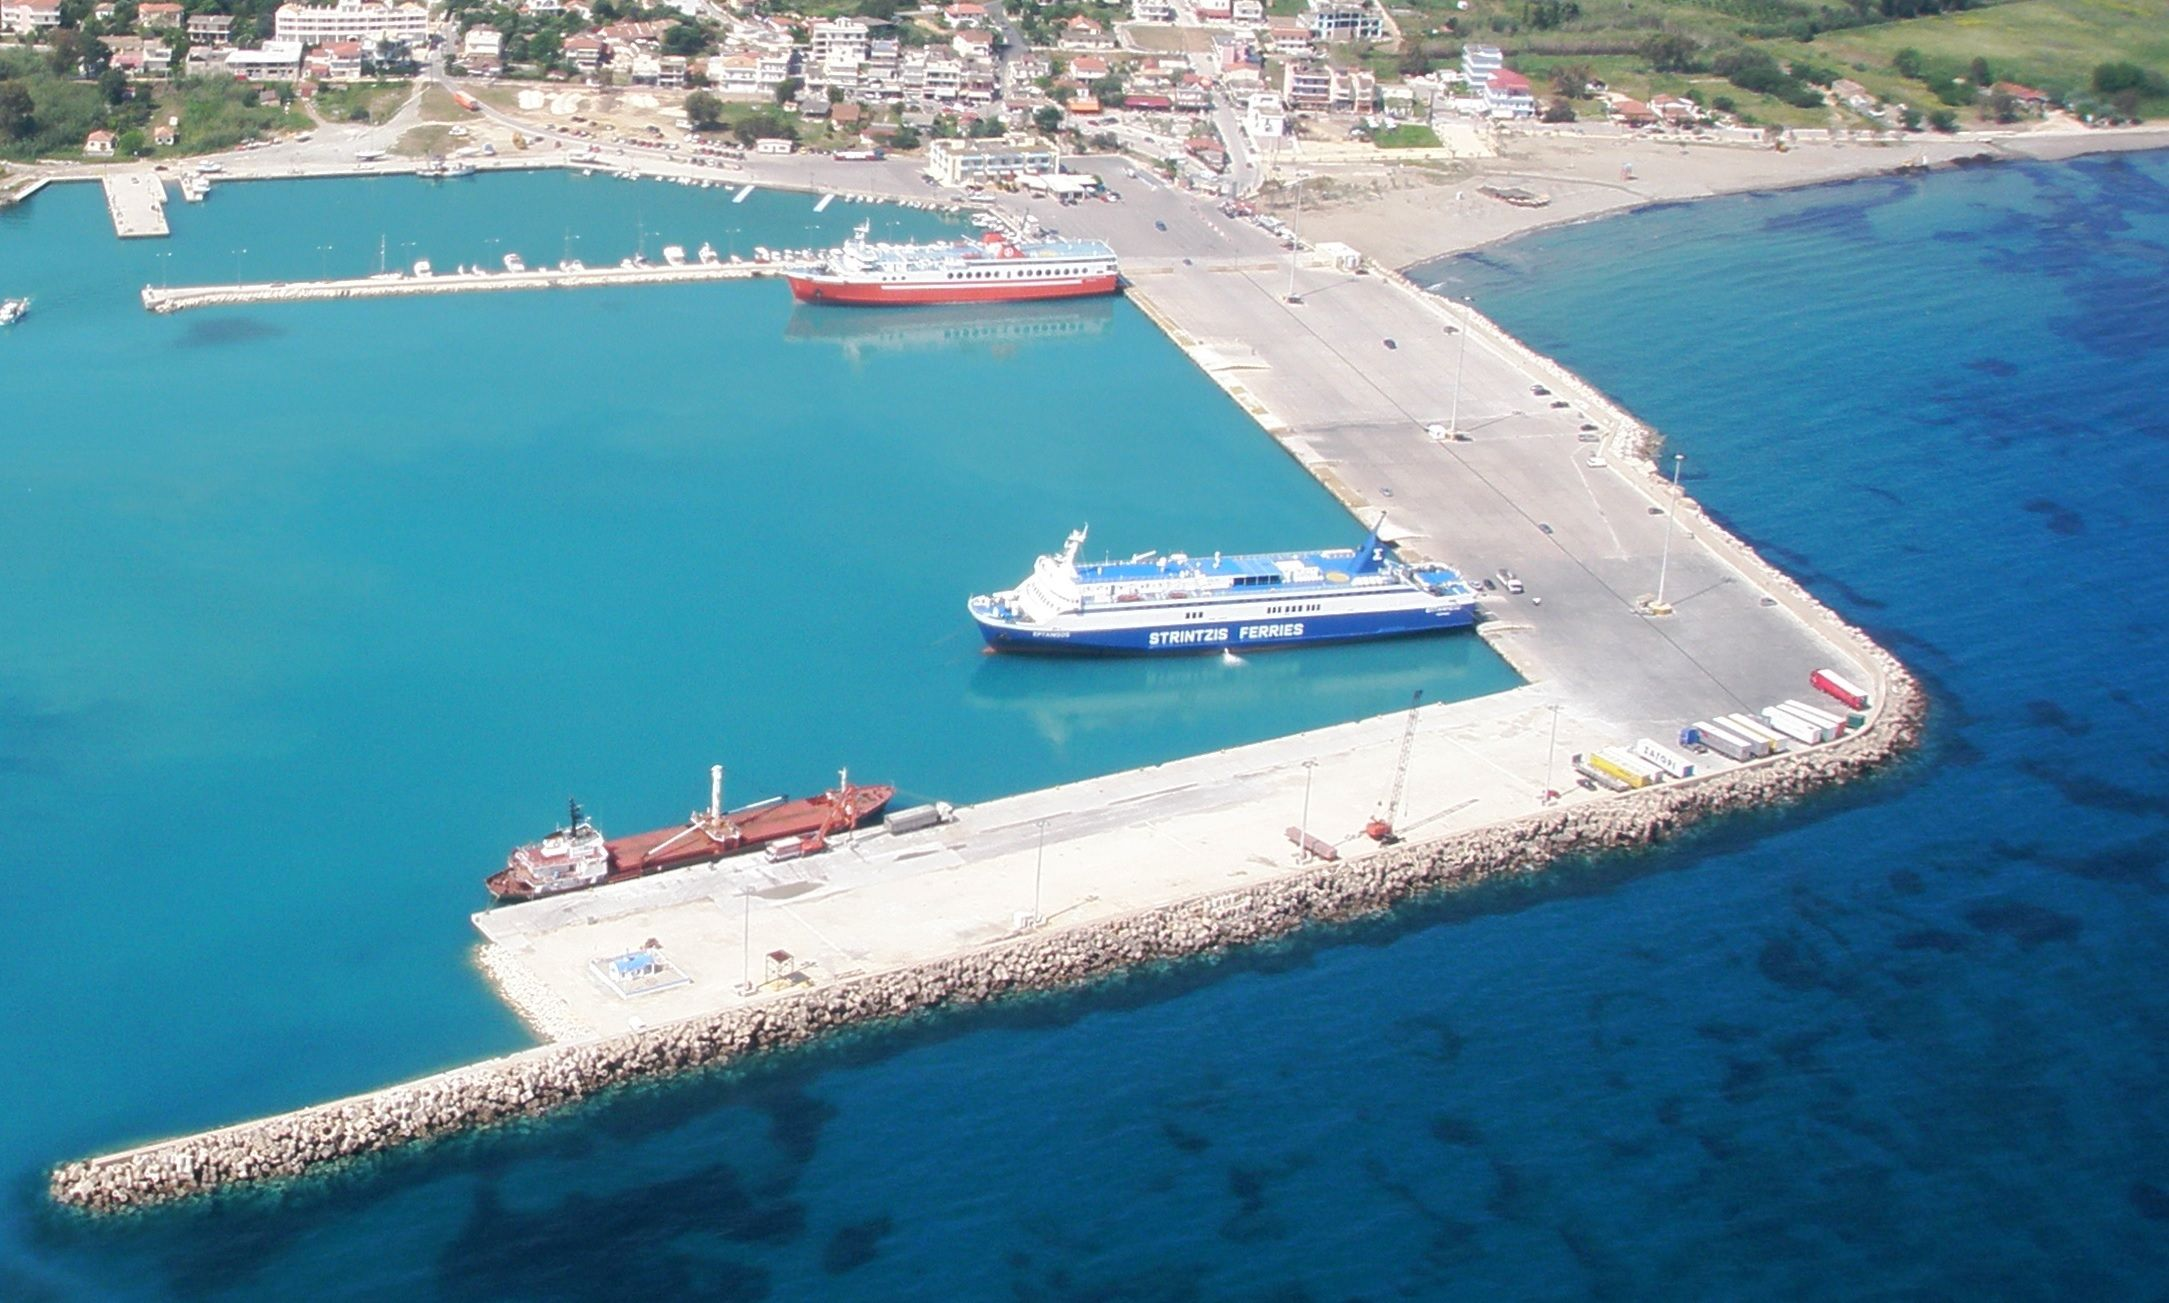 In Killini the first land-based electrical power supply infrastructure for ships in the Eastern Mediterranean